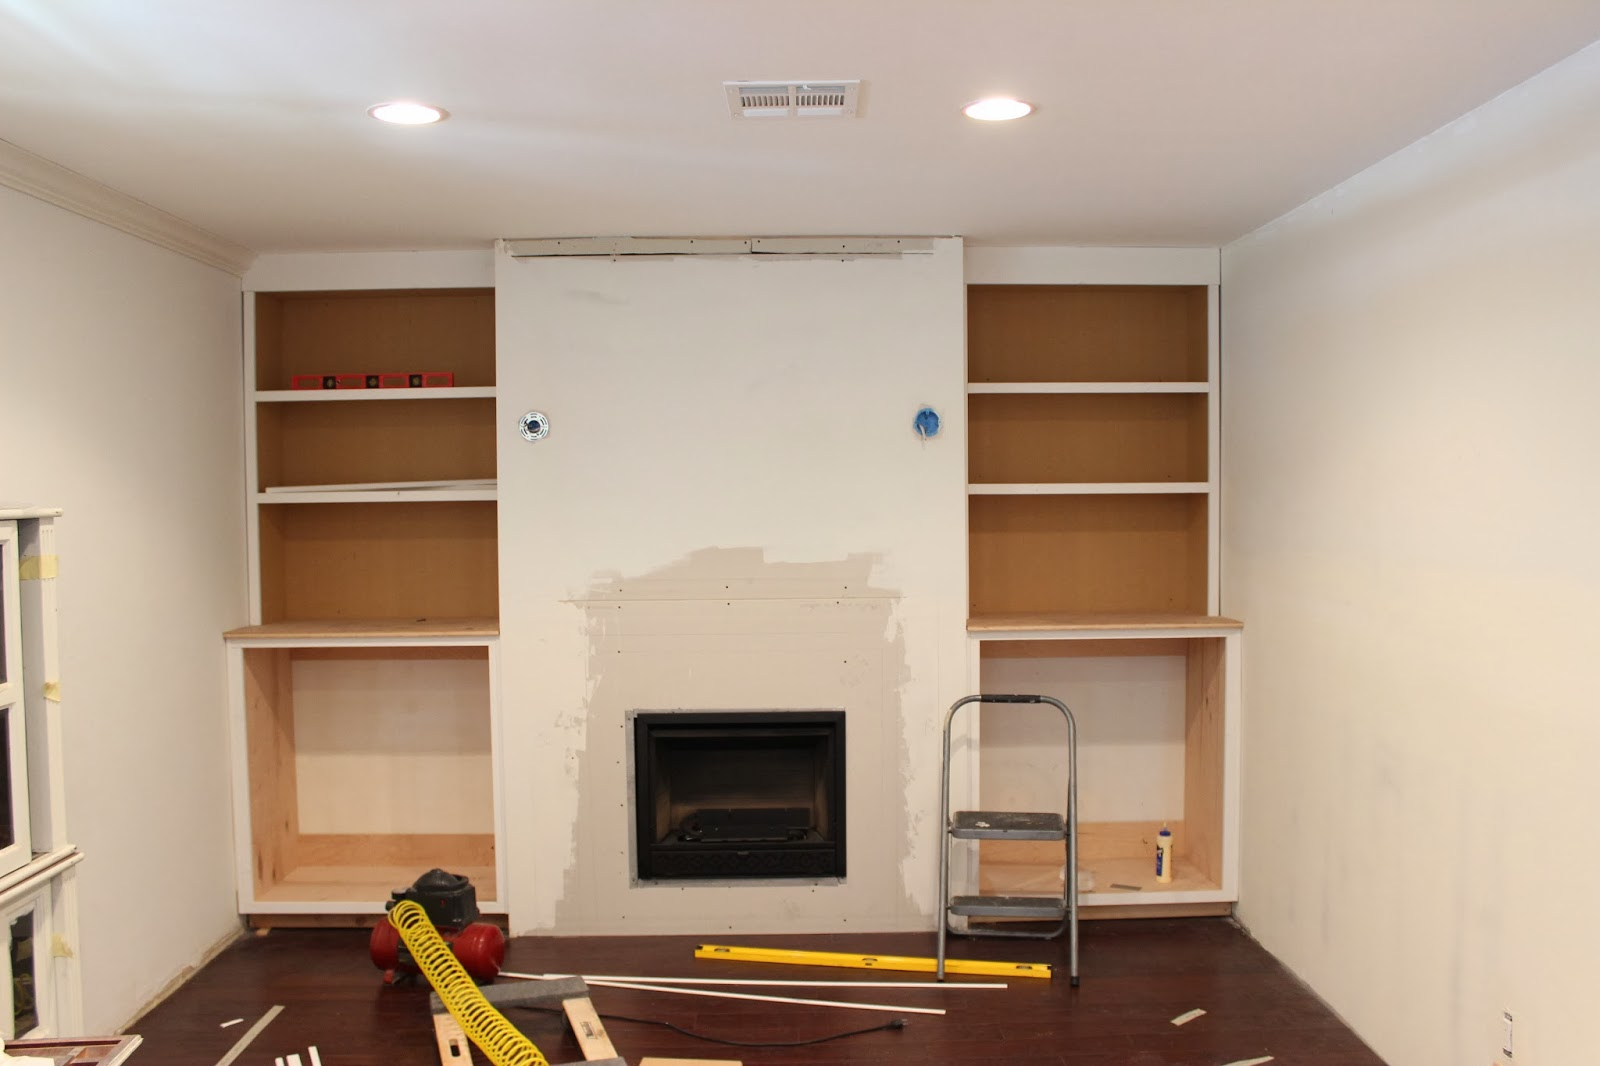 This helped tie the cabinets and fireplace in to the room and make it look  built in. Overall we really love the way that this wall looks like it has  been ...